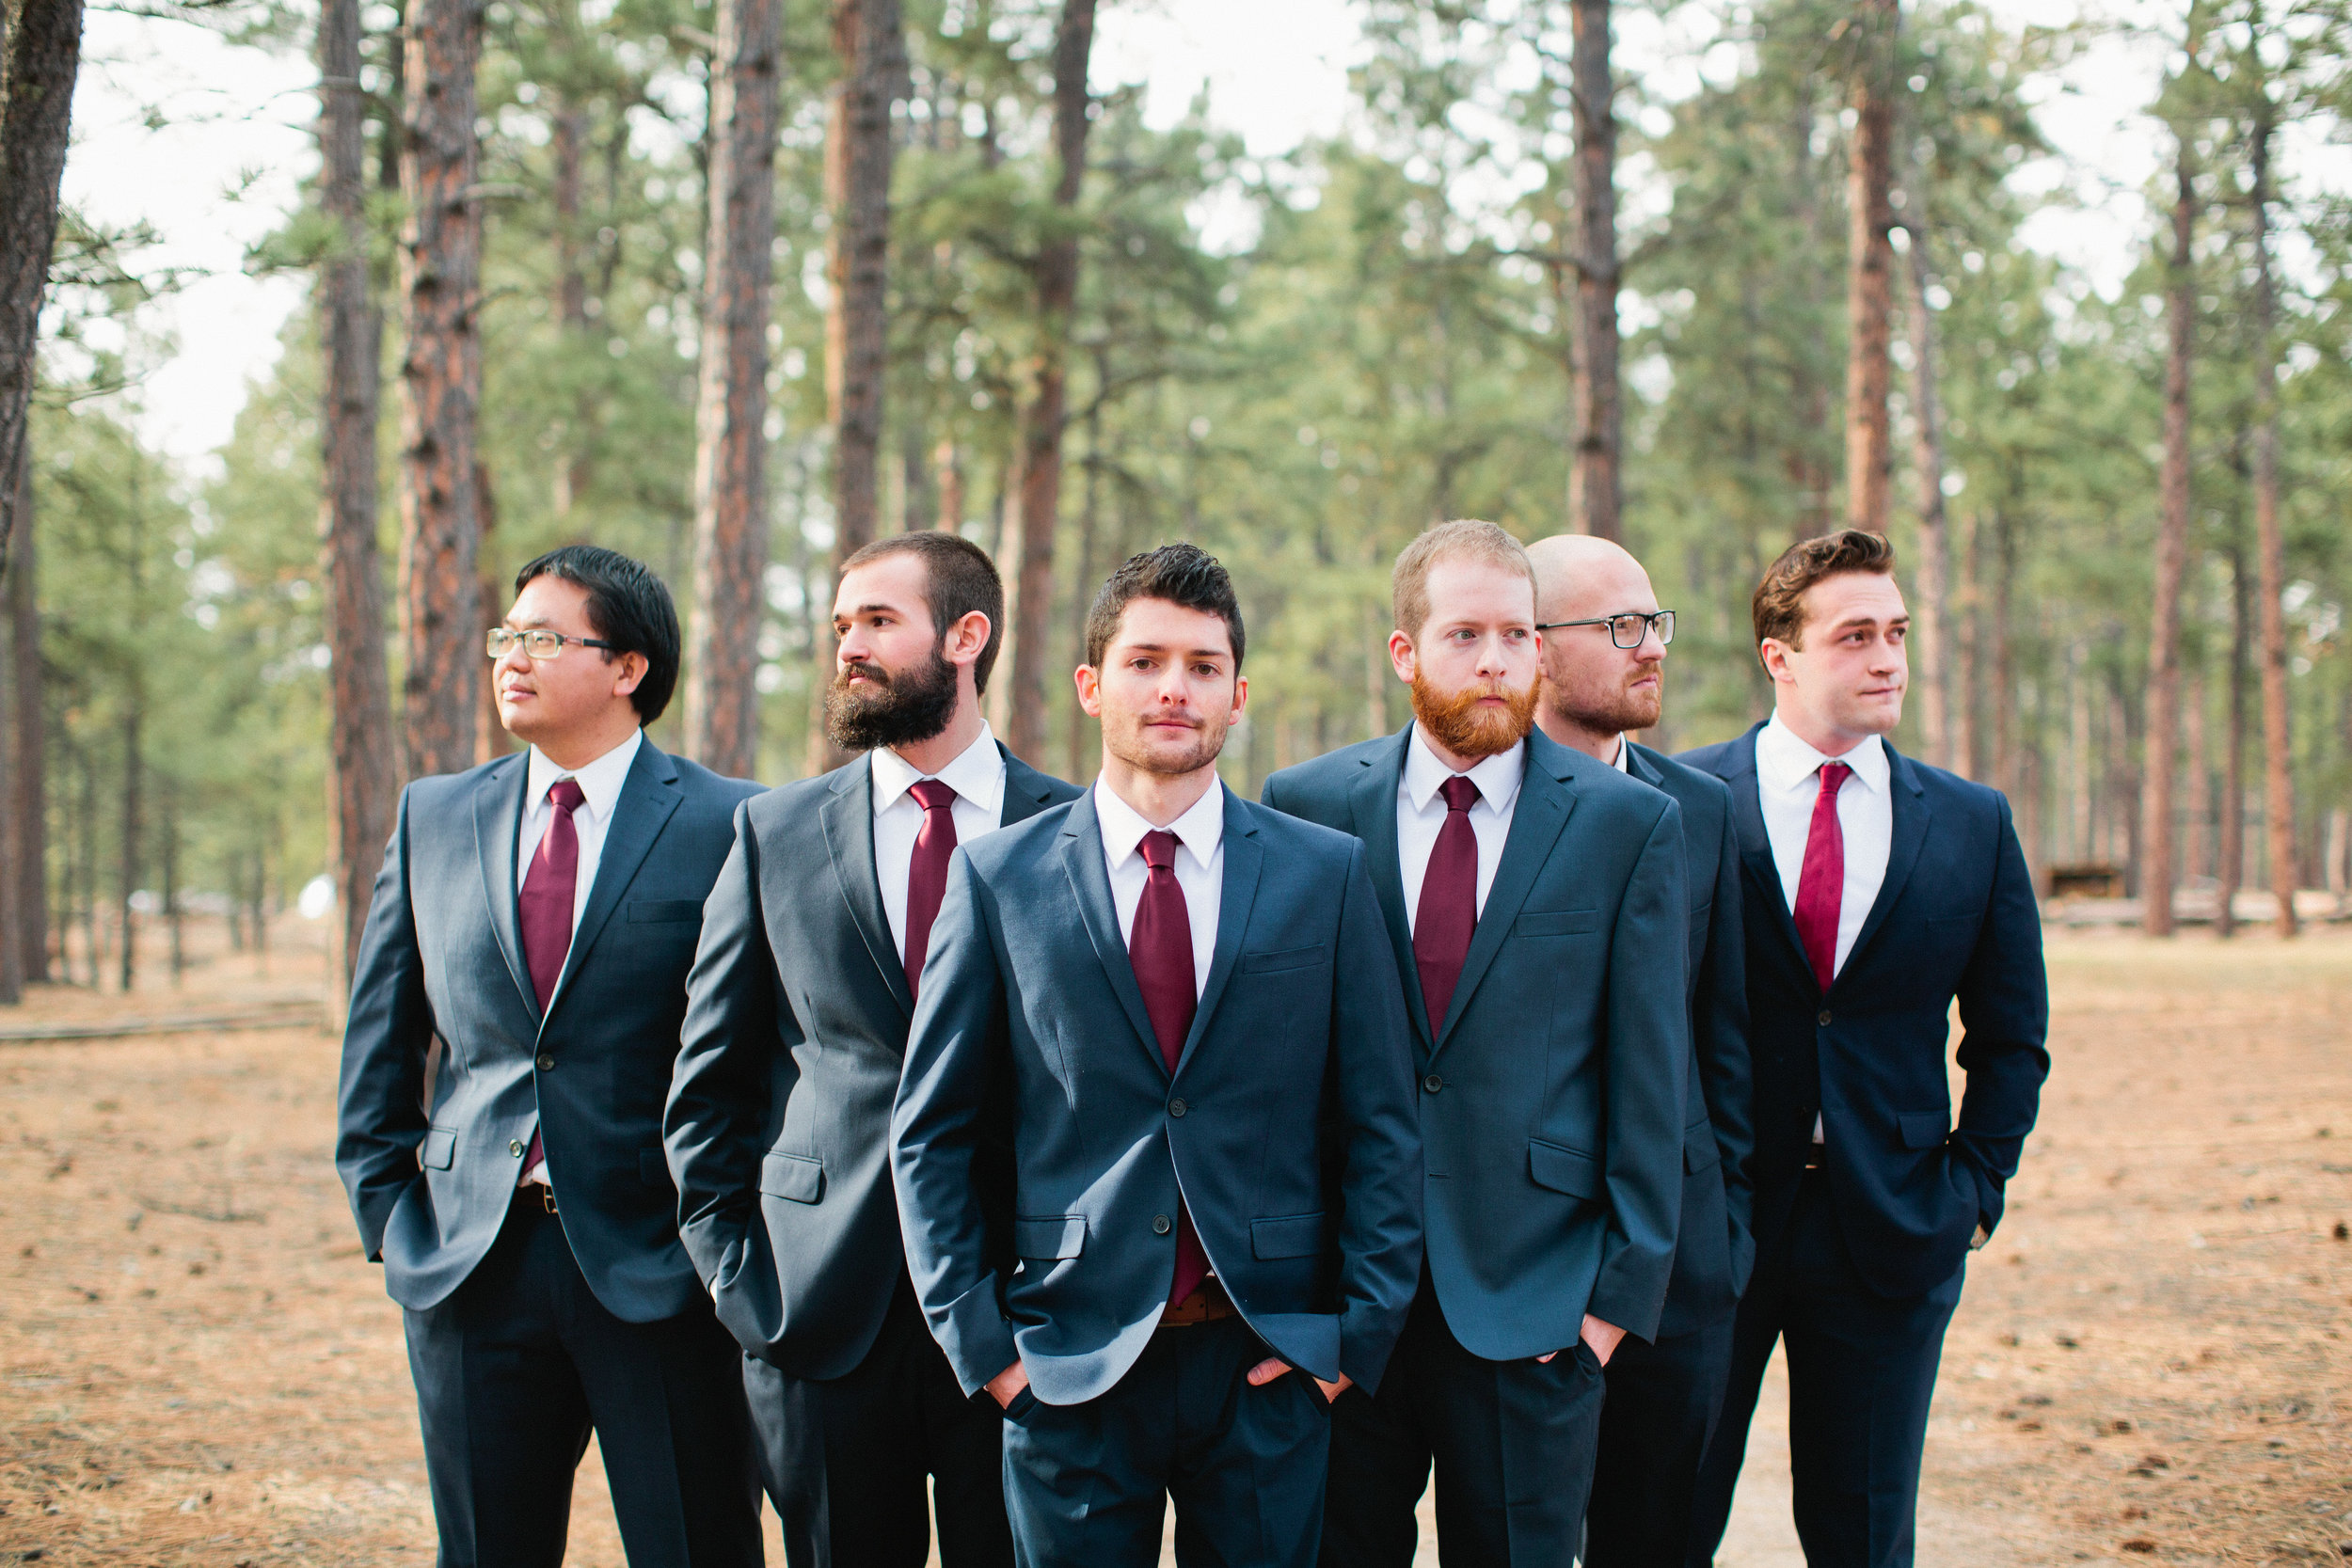 fun groomsmen wedding photos